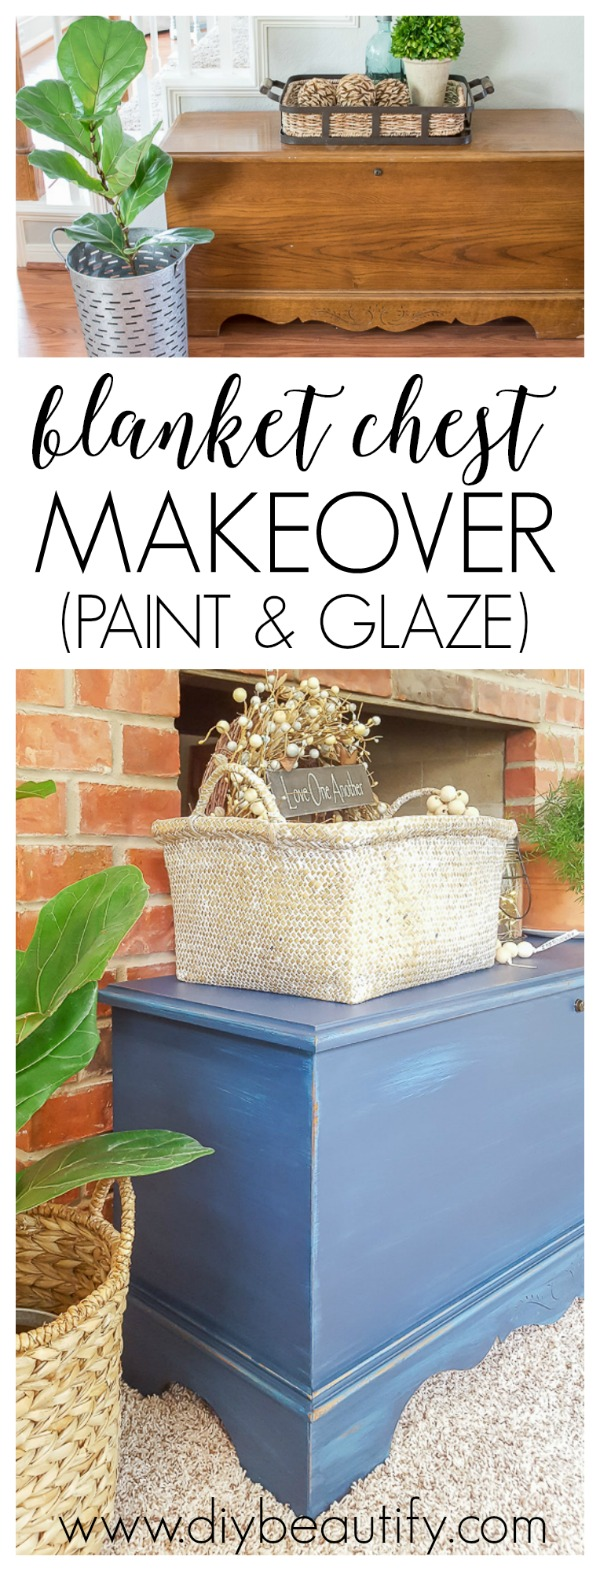 blanket chest makeover with DIY paint and glaze